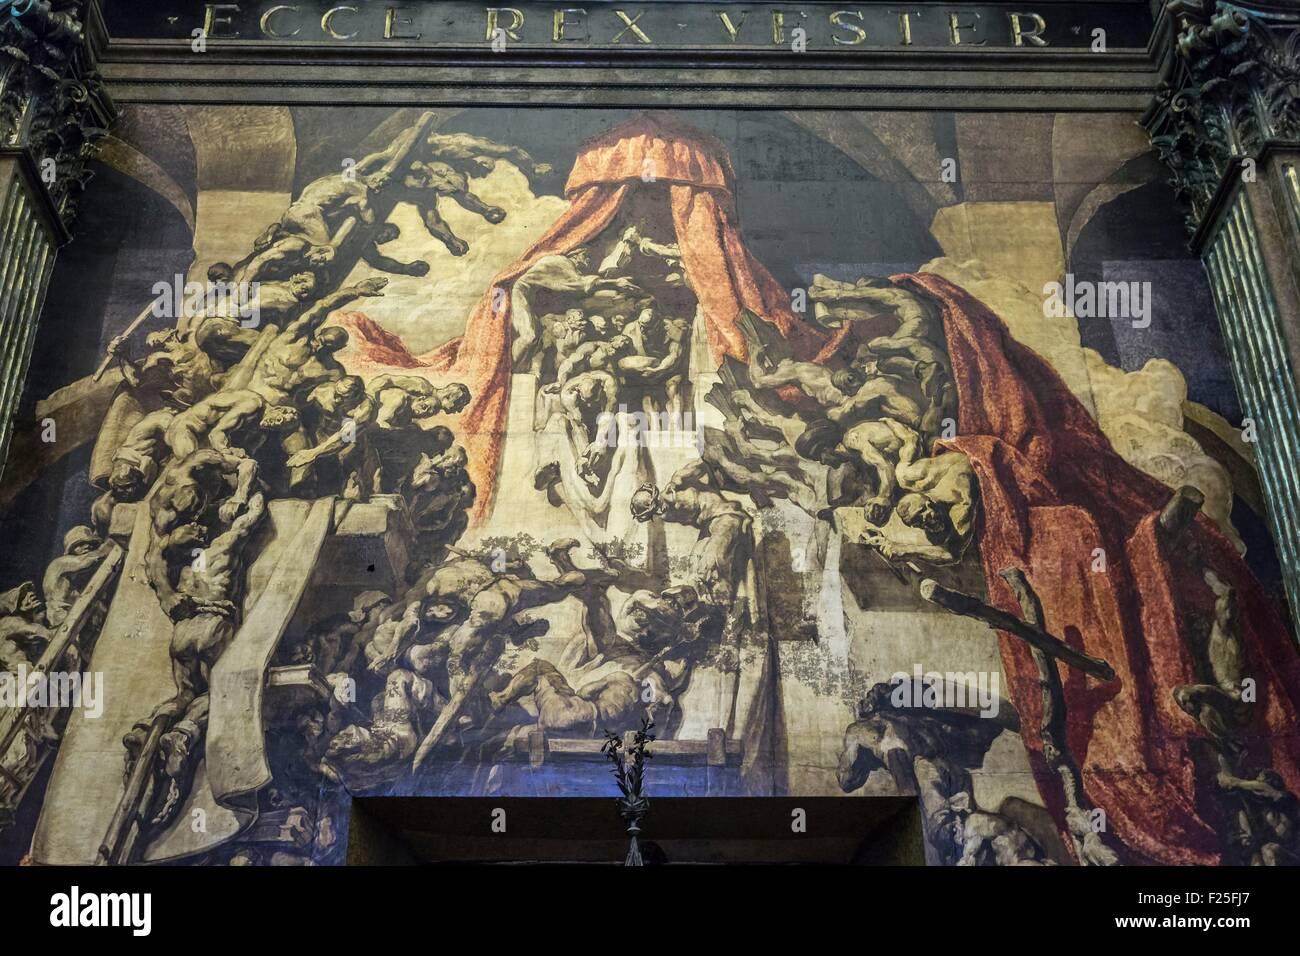 Spain, Catalonia, Barcelona Province, Vic, Sant Pere cathedral, paintings by Josep Maria Sert - Stock Image